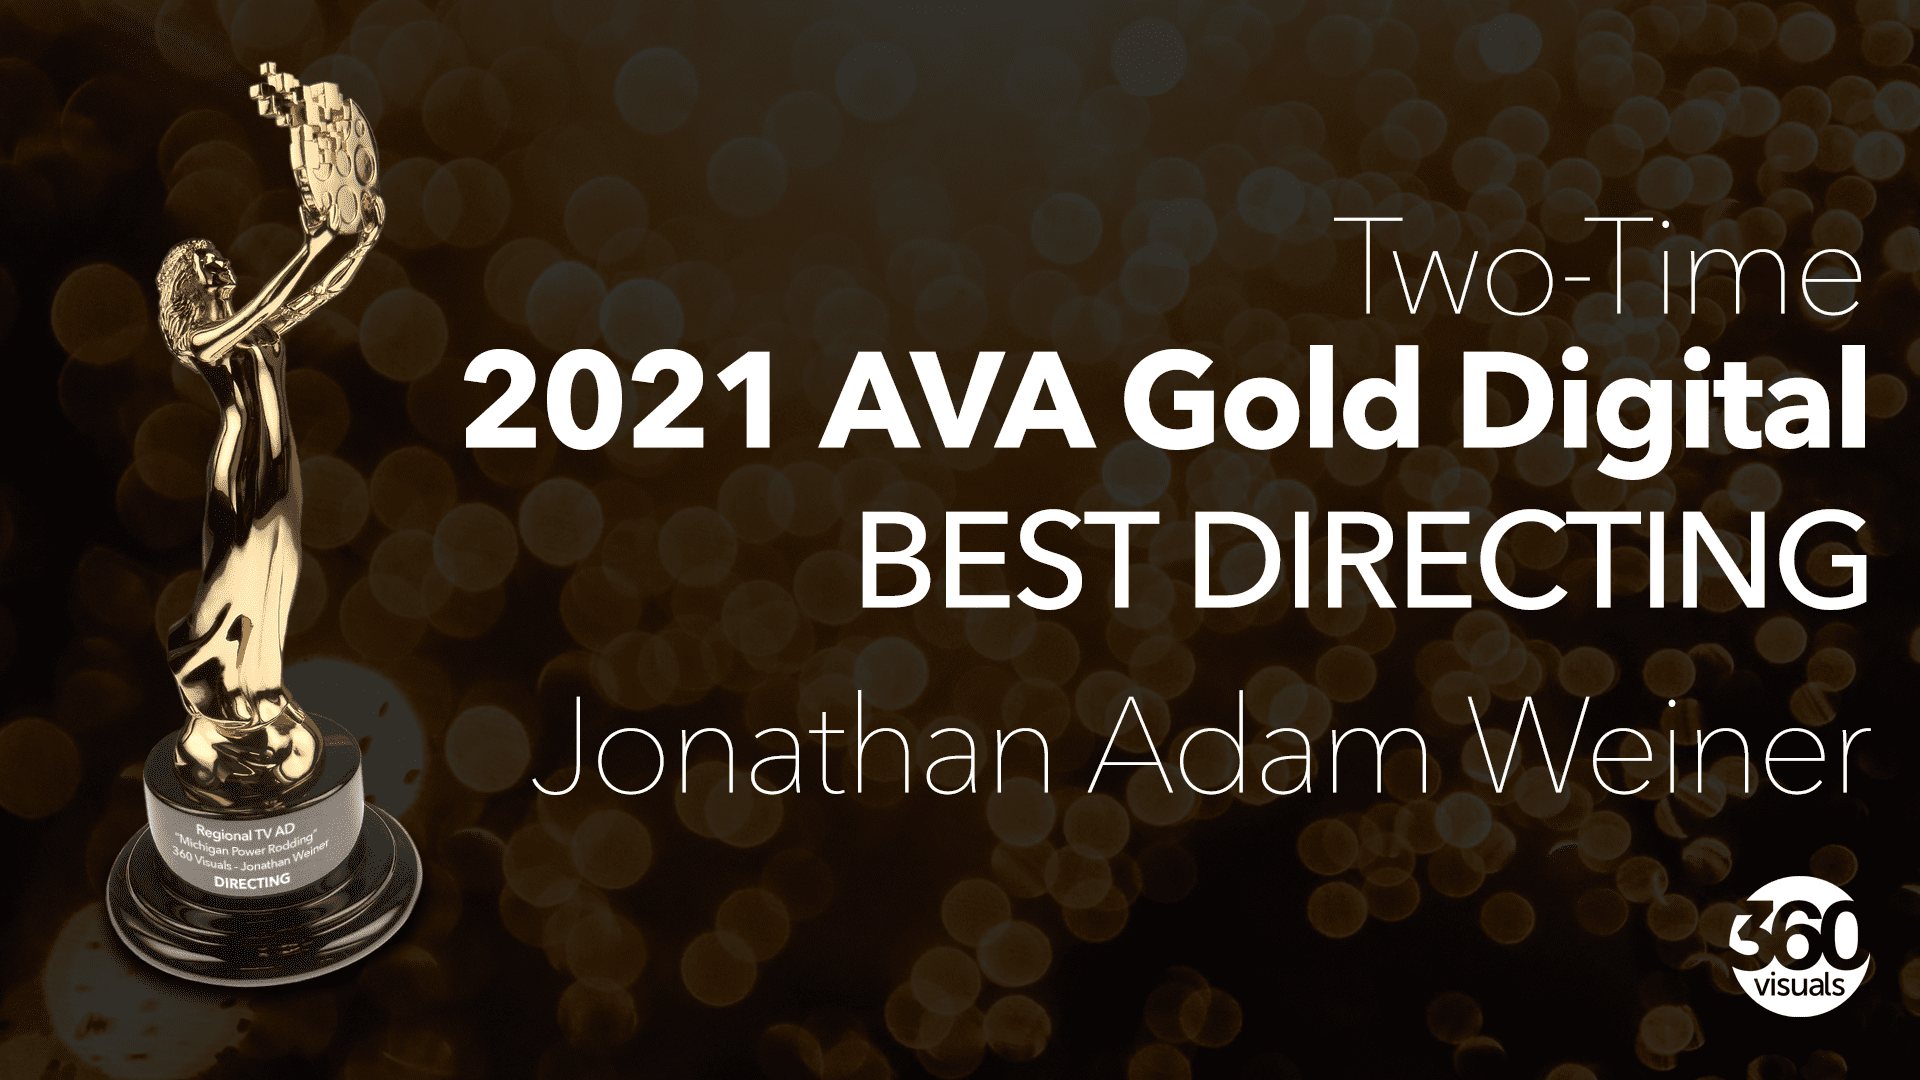 2021 AVA Digital Gold Award - Charlotte, NC